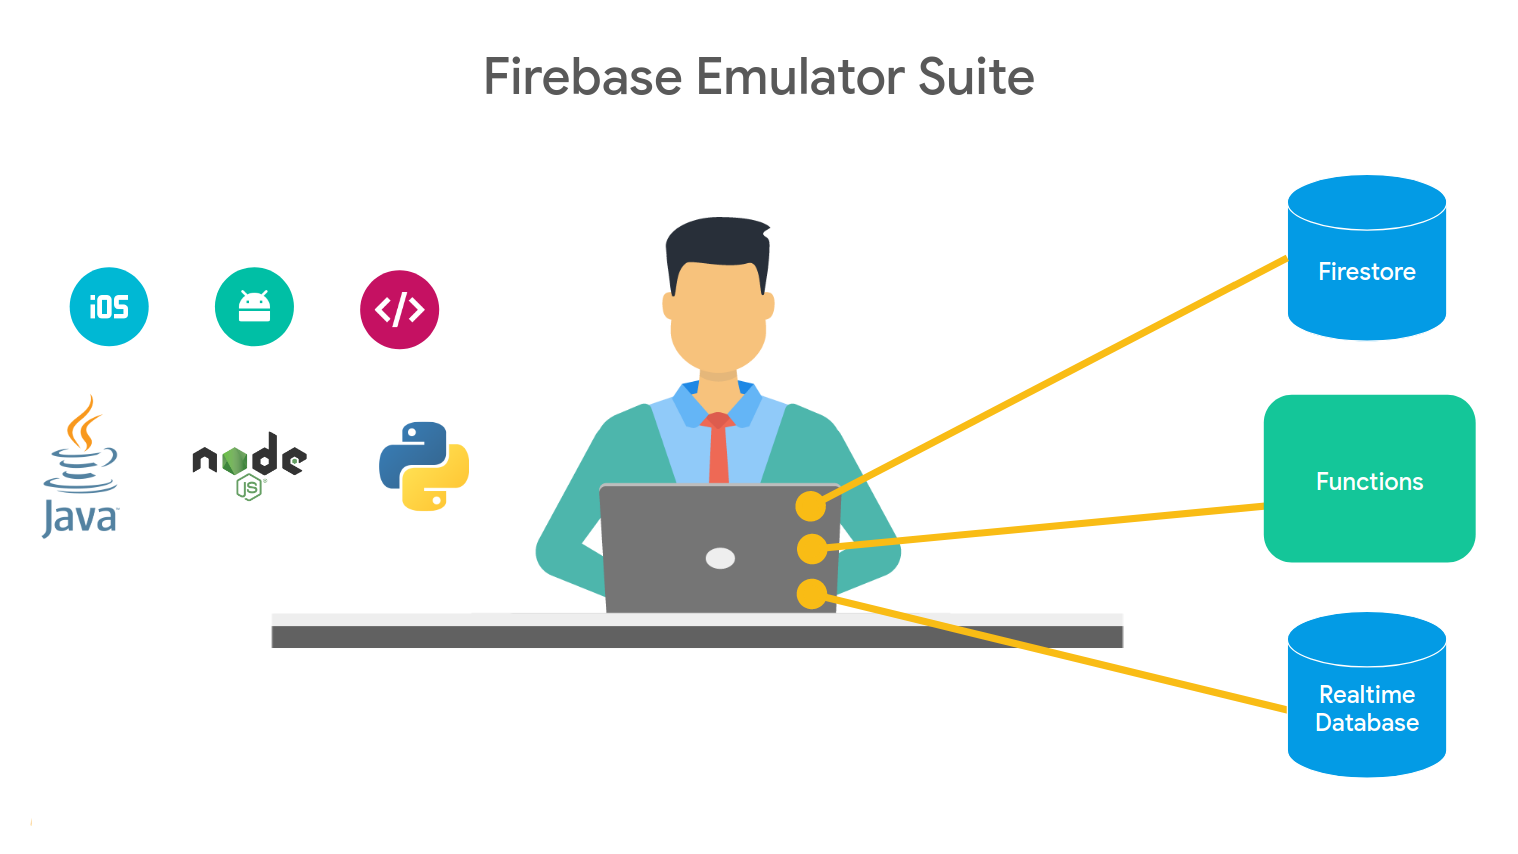 La Firebase Emulator Suite ora supporta il Realtime Database ed SDK lato client e server più estesi